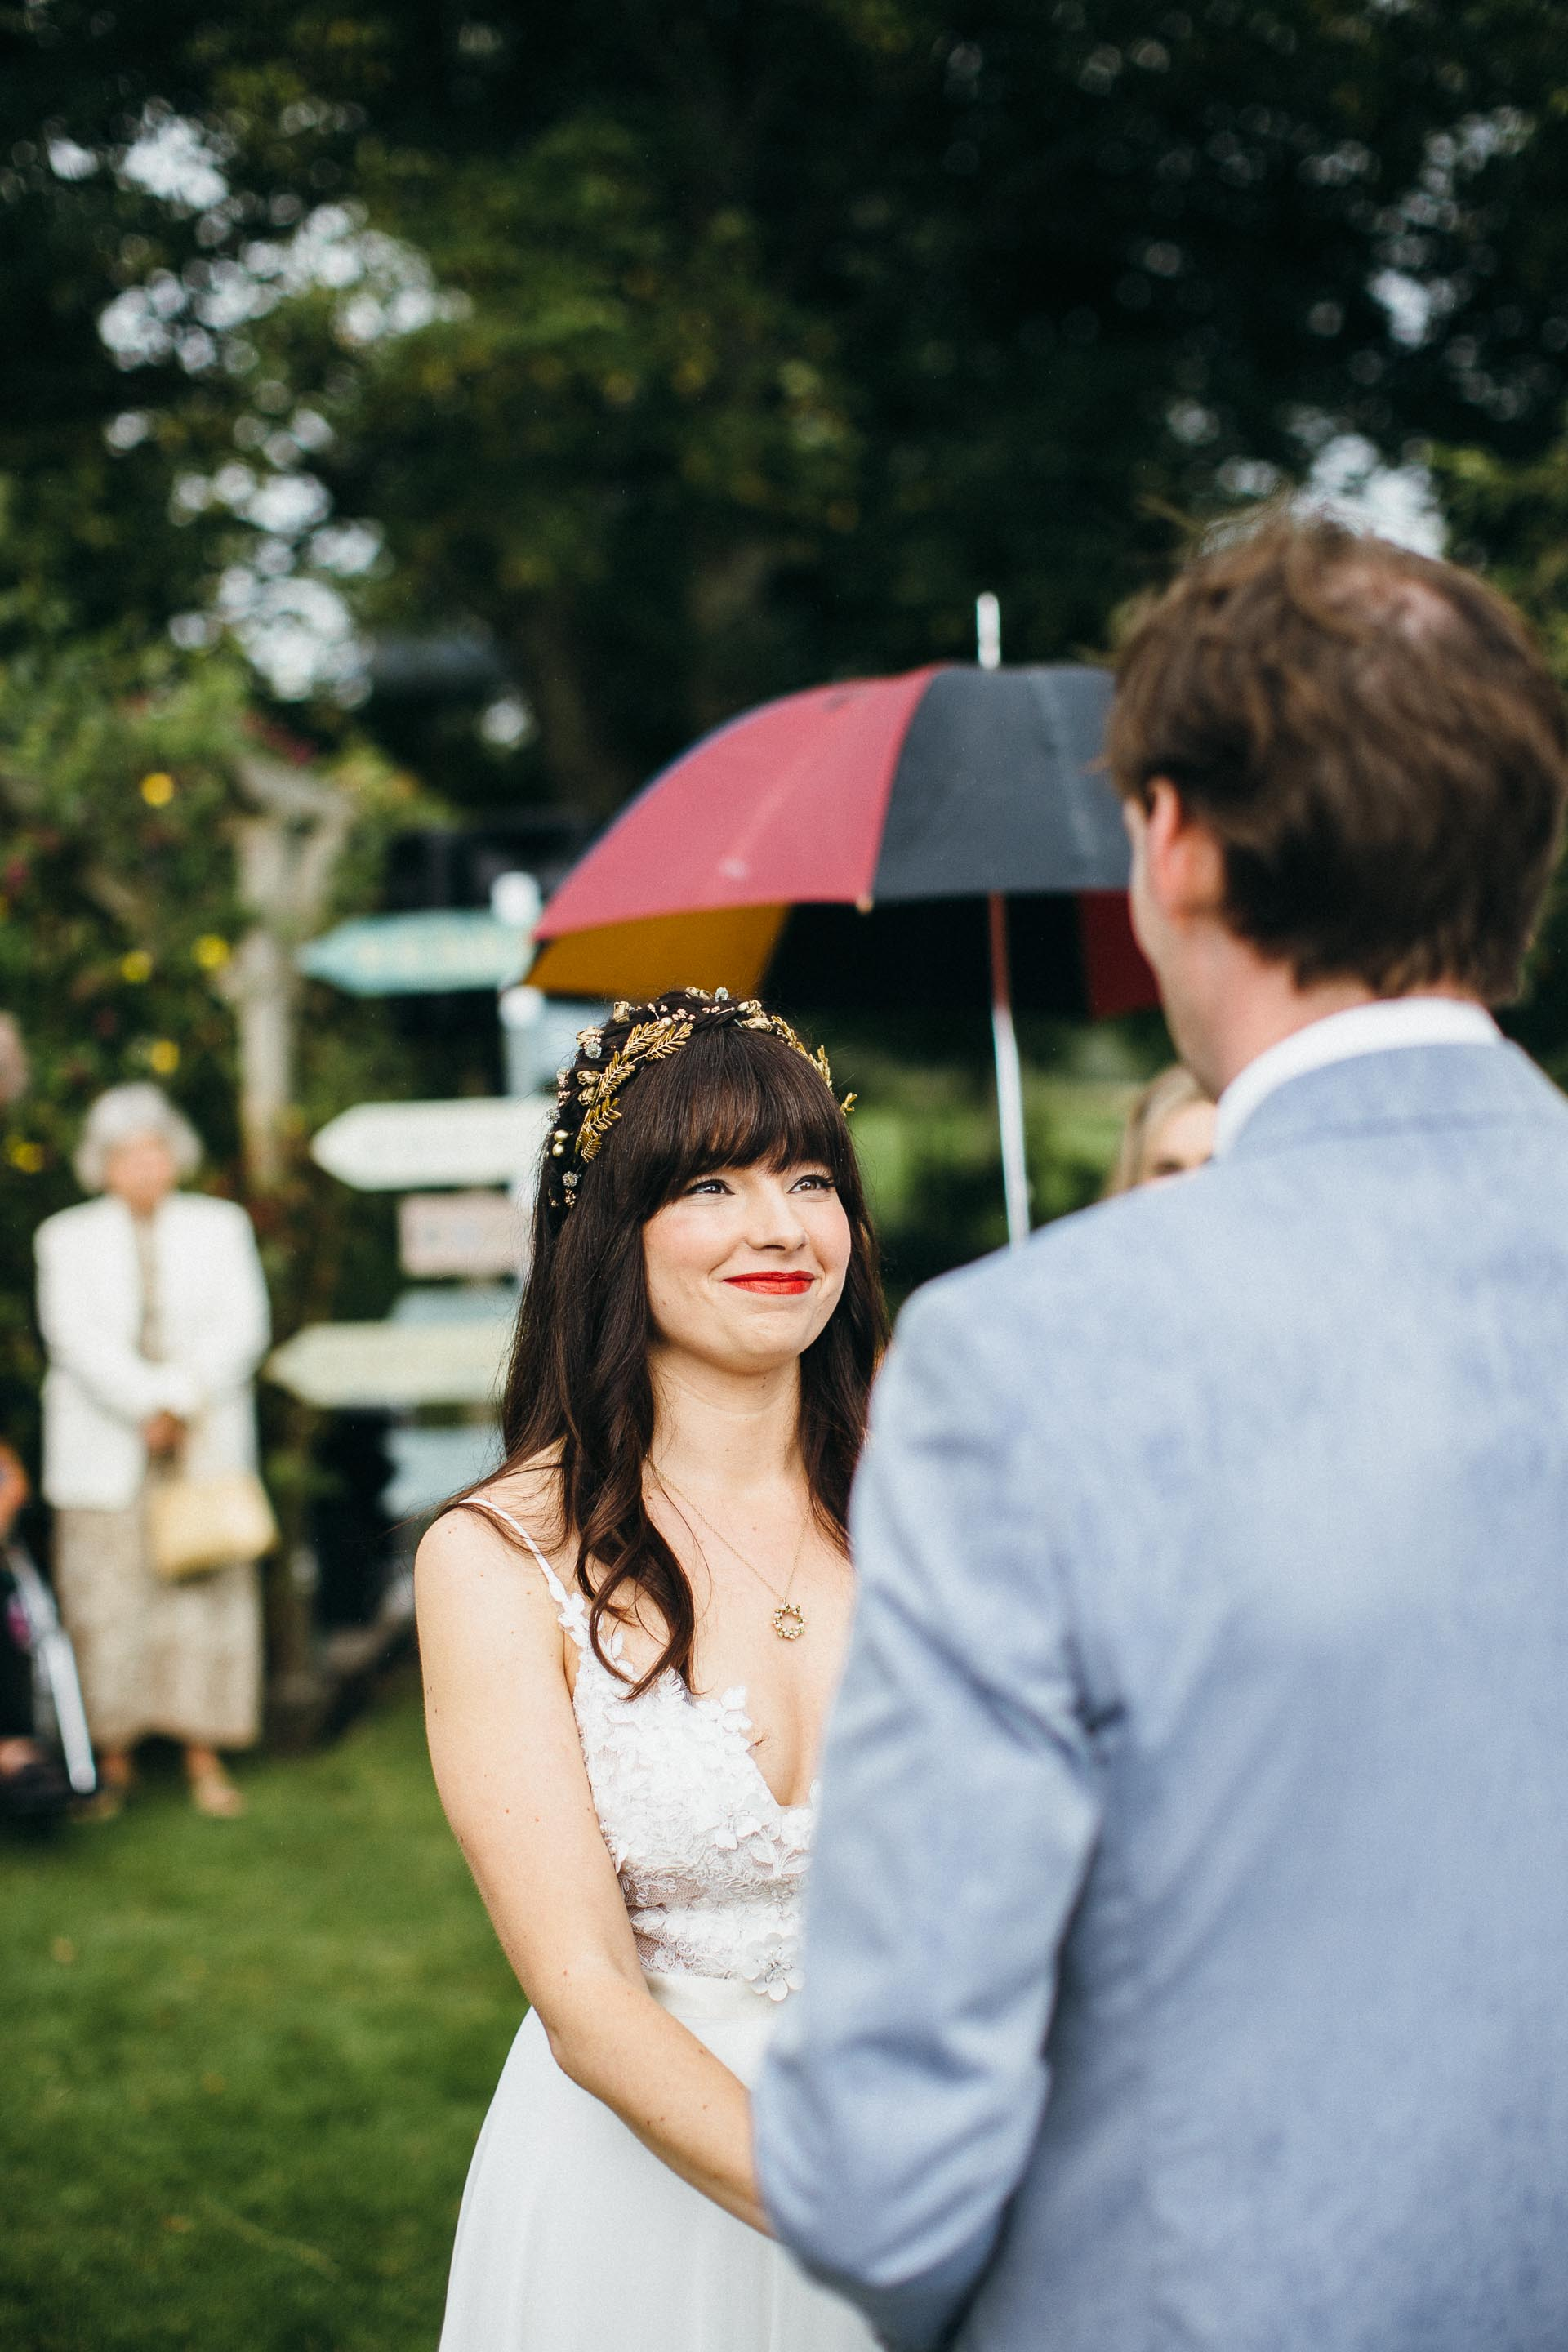 Ford Farm Wedding England Photographer UK by Jean-Laurent Gaudy Photography